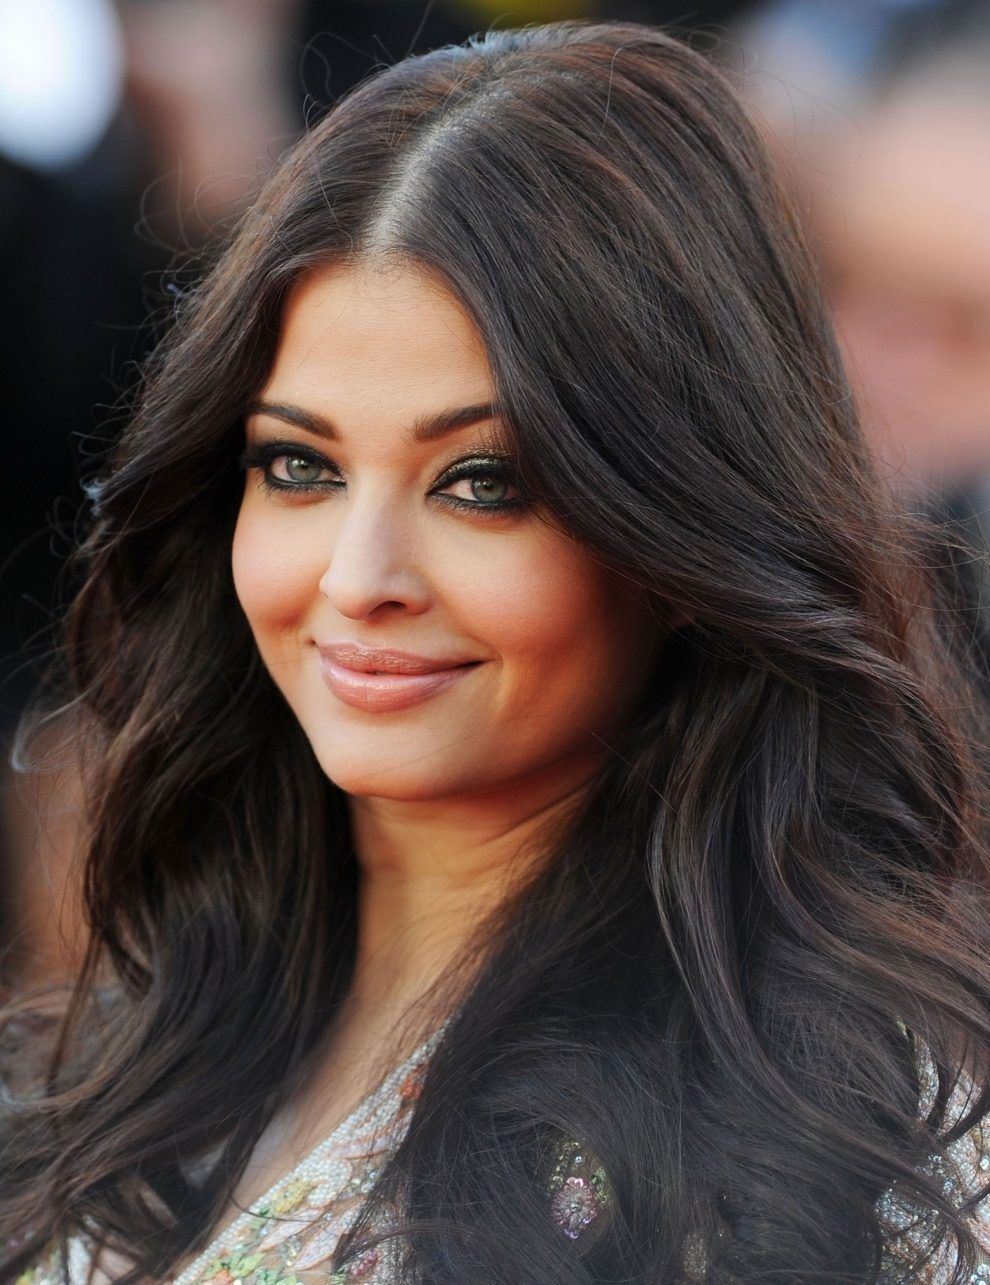 Haircut For Round Face Thin Hair Indian Wavy Haircut Hair Thin Indian Haircut Round F In 2020 Round Face Haircuts Thick Hair Styles Haircuts For Round Face Shape